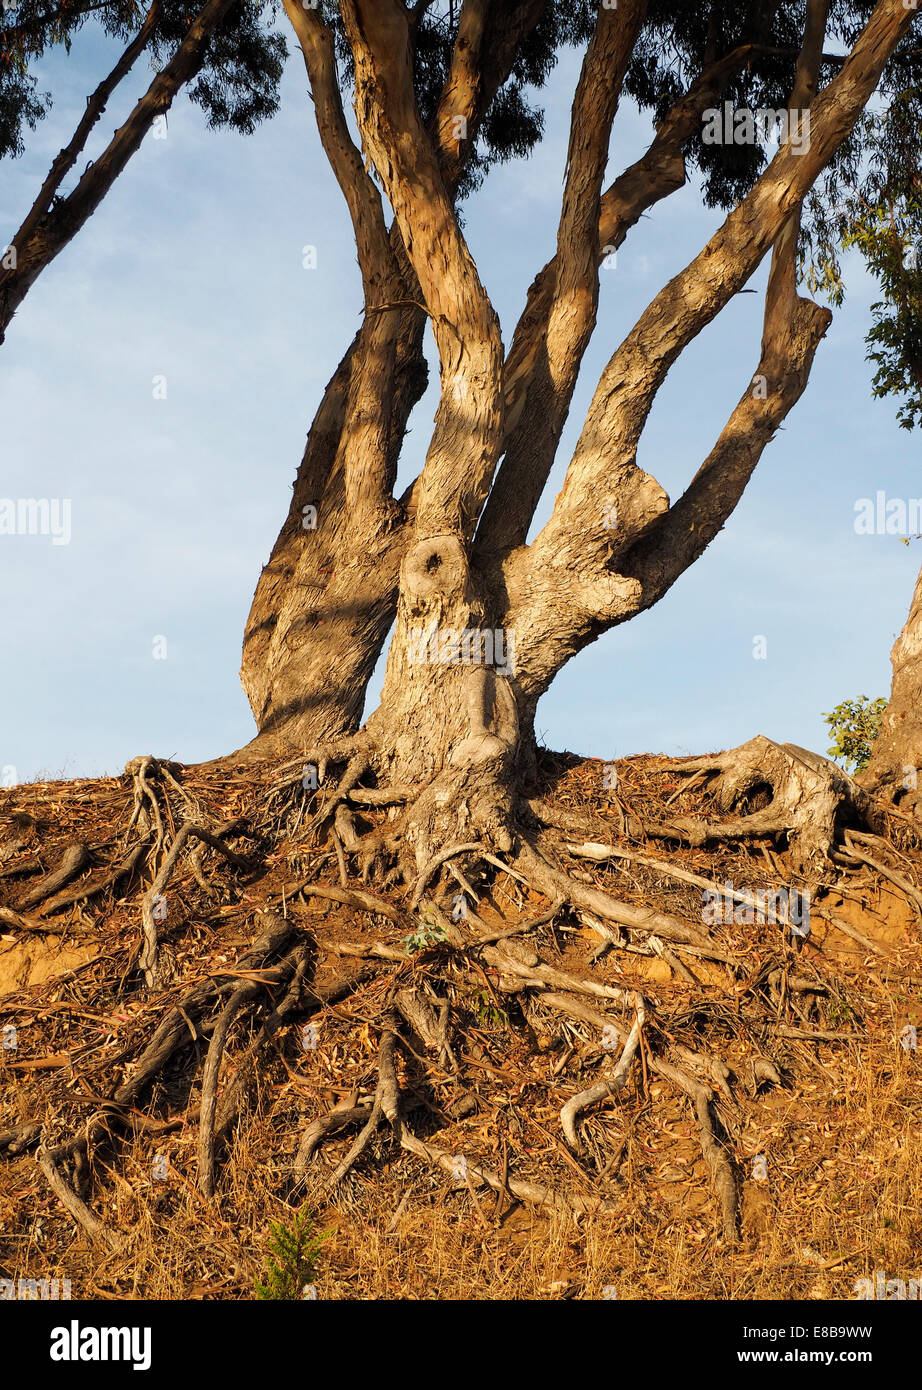 Tangle of Tree Roots Exposed Above the Soil - Stock Image